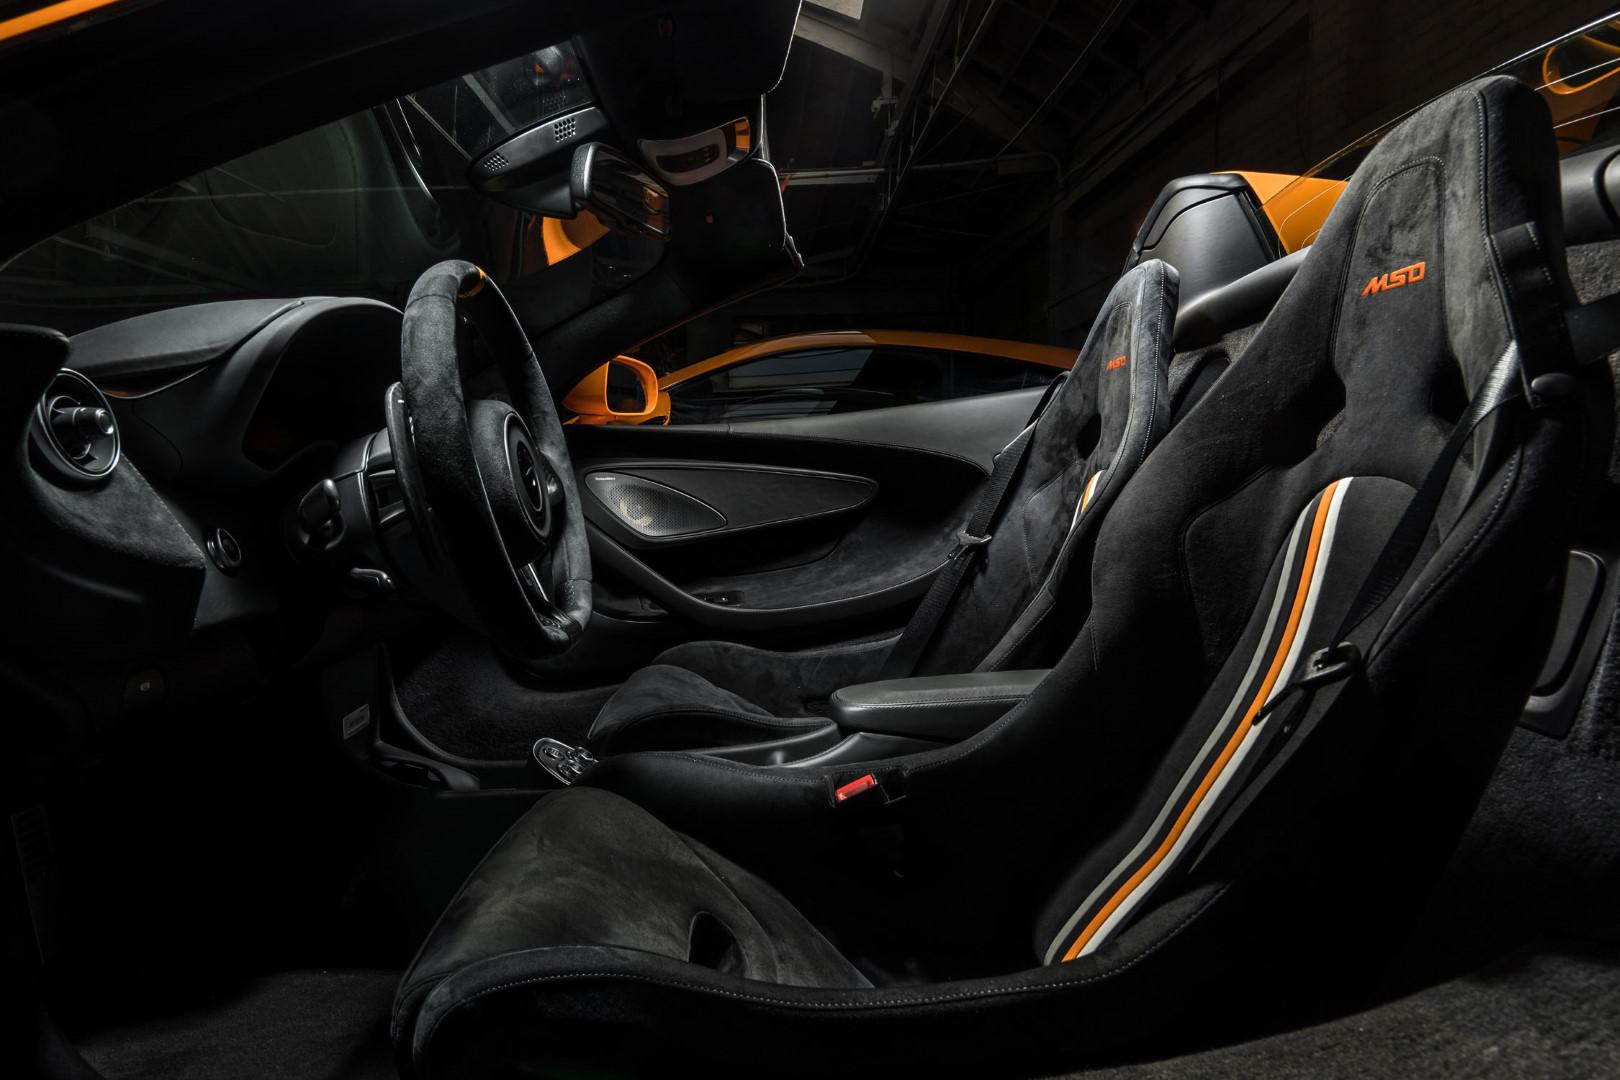 mclaren-special-operations-devoile-une-nouvelle-collection-racing-through-the-ages-928-5.jpg